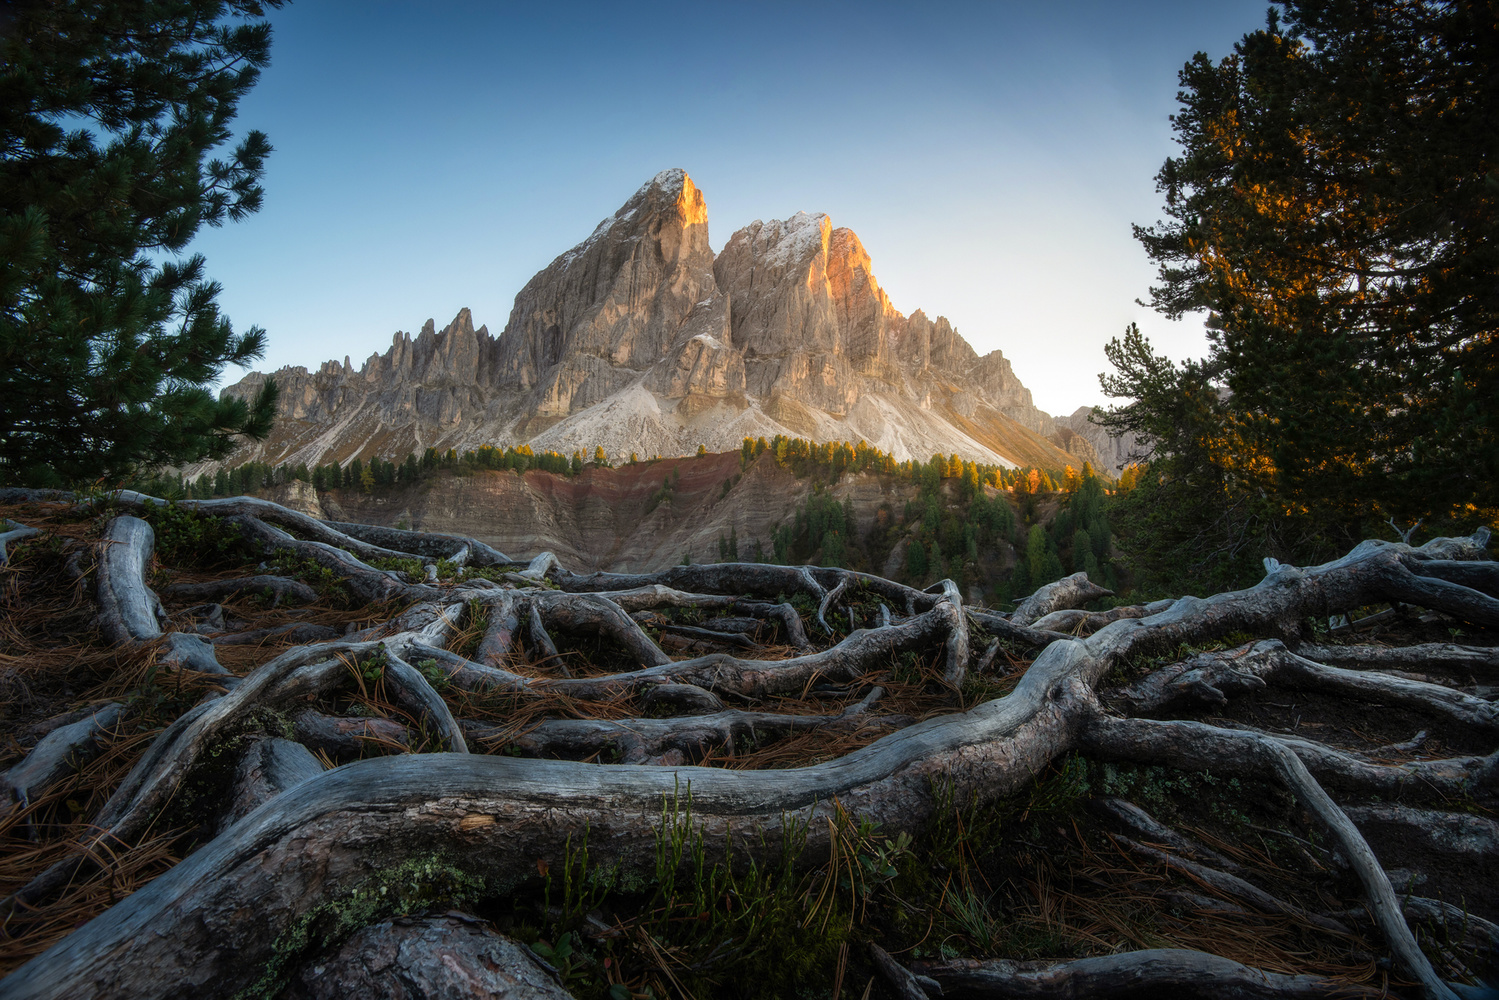 The Roots of the Dolomites by Philip Slotte